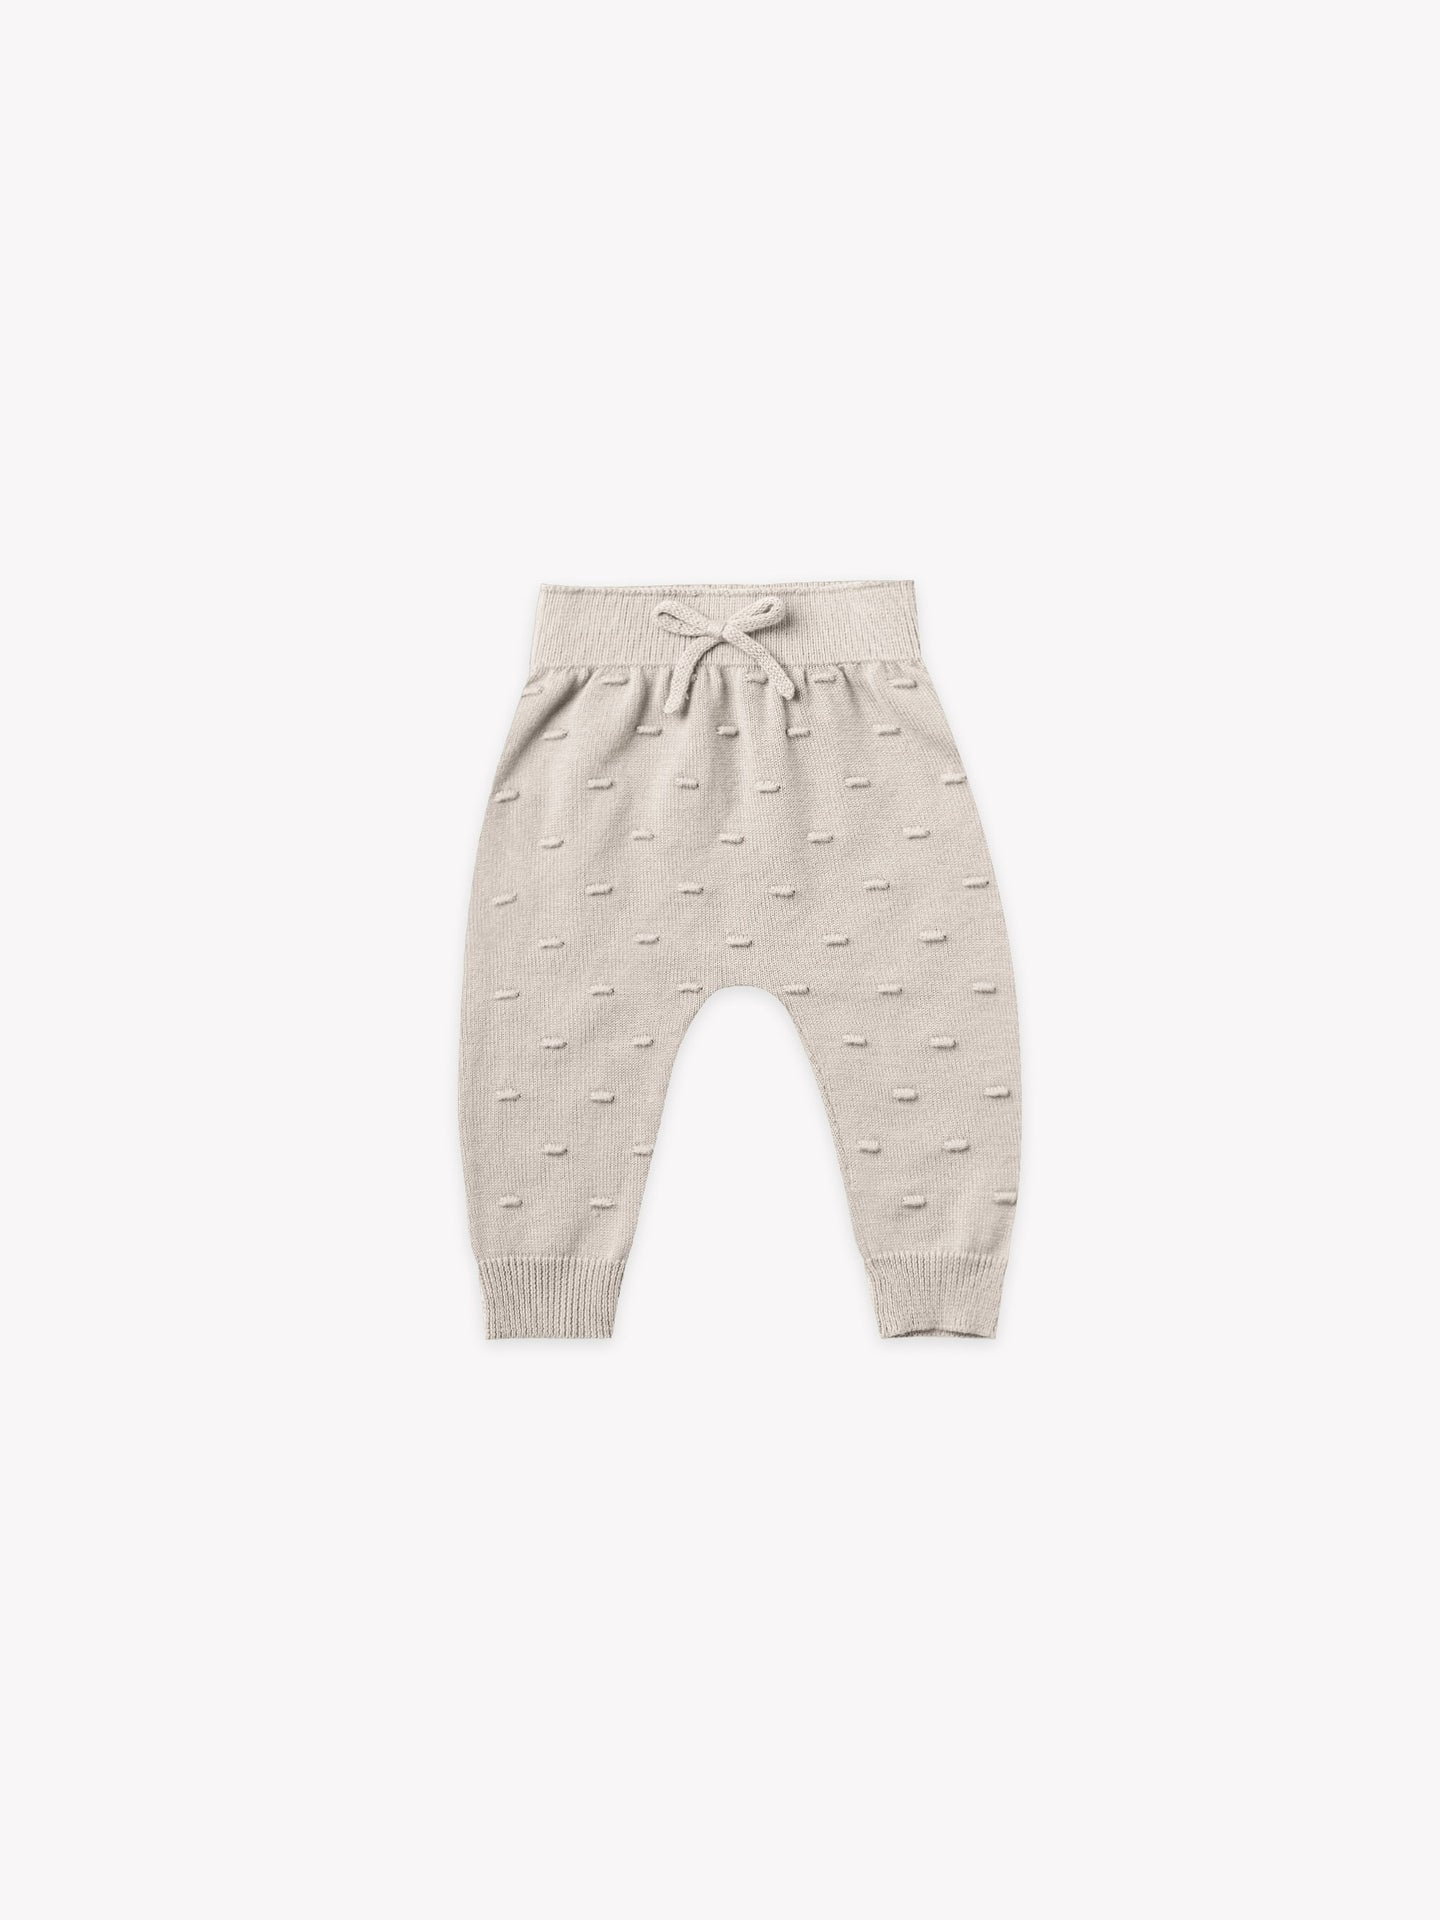 Quincy Mae - Organic Sweater Knit Pant - Fog